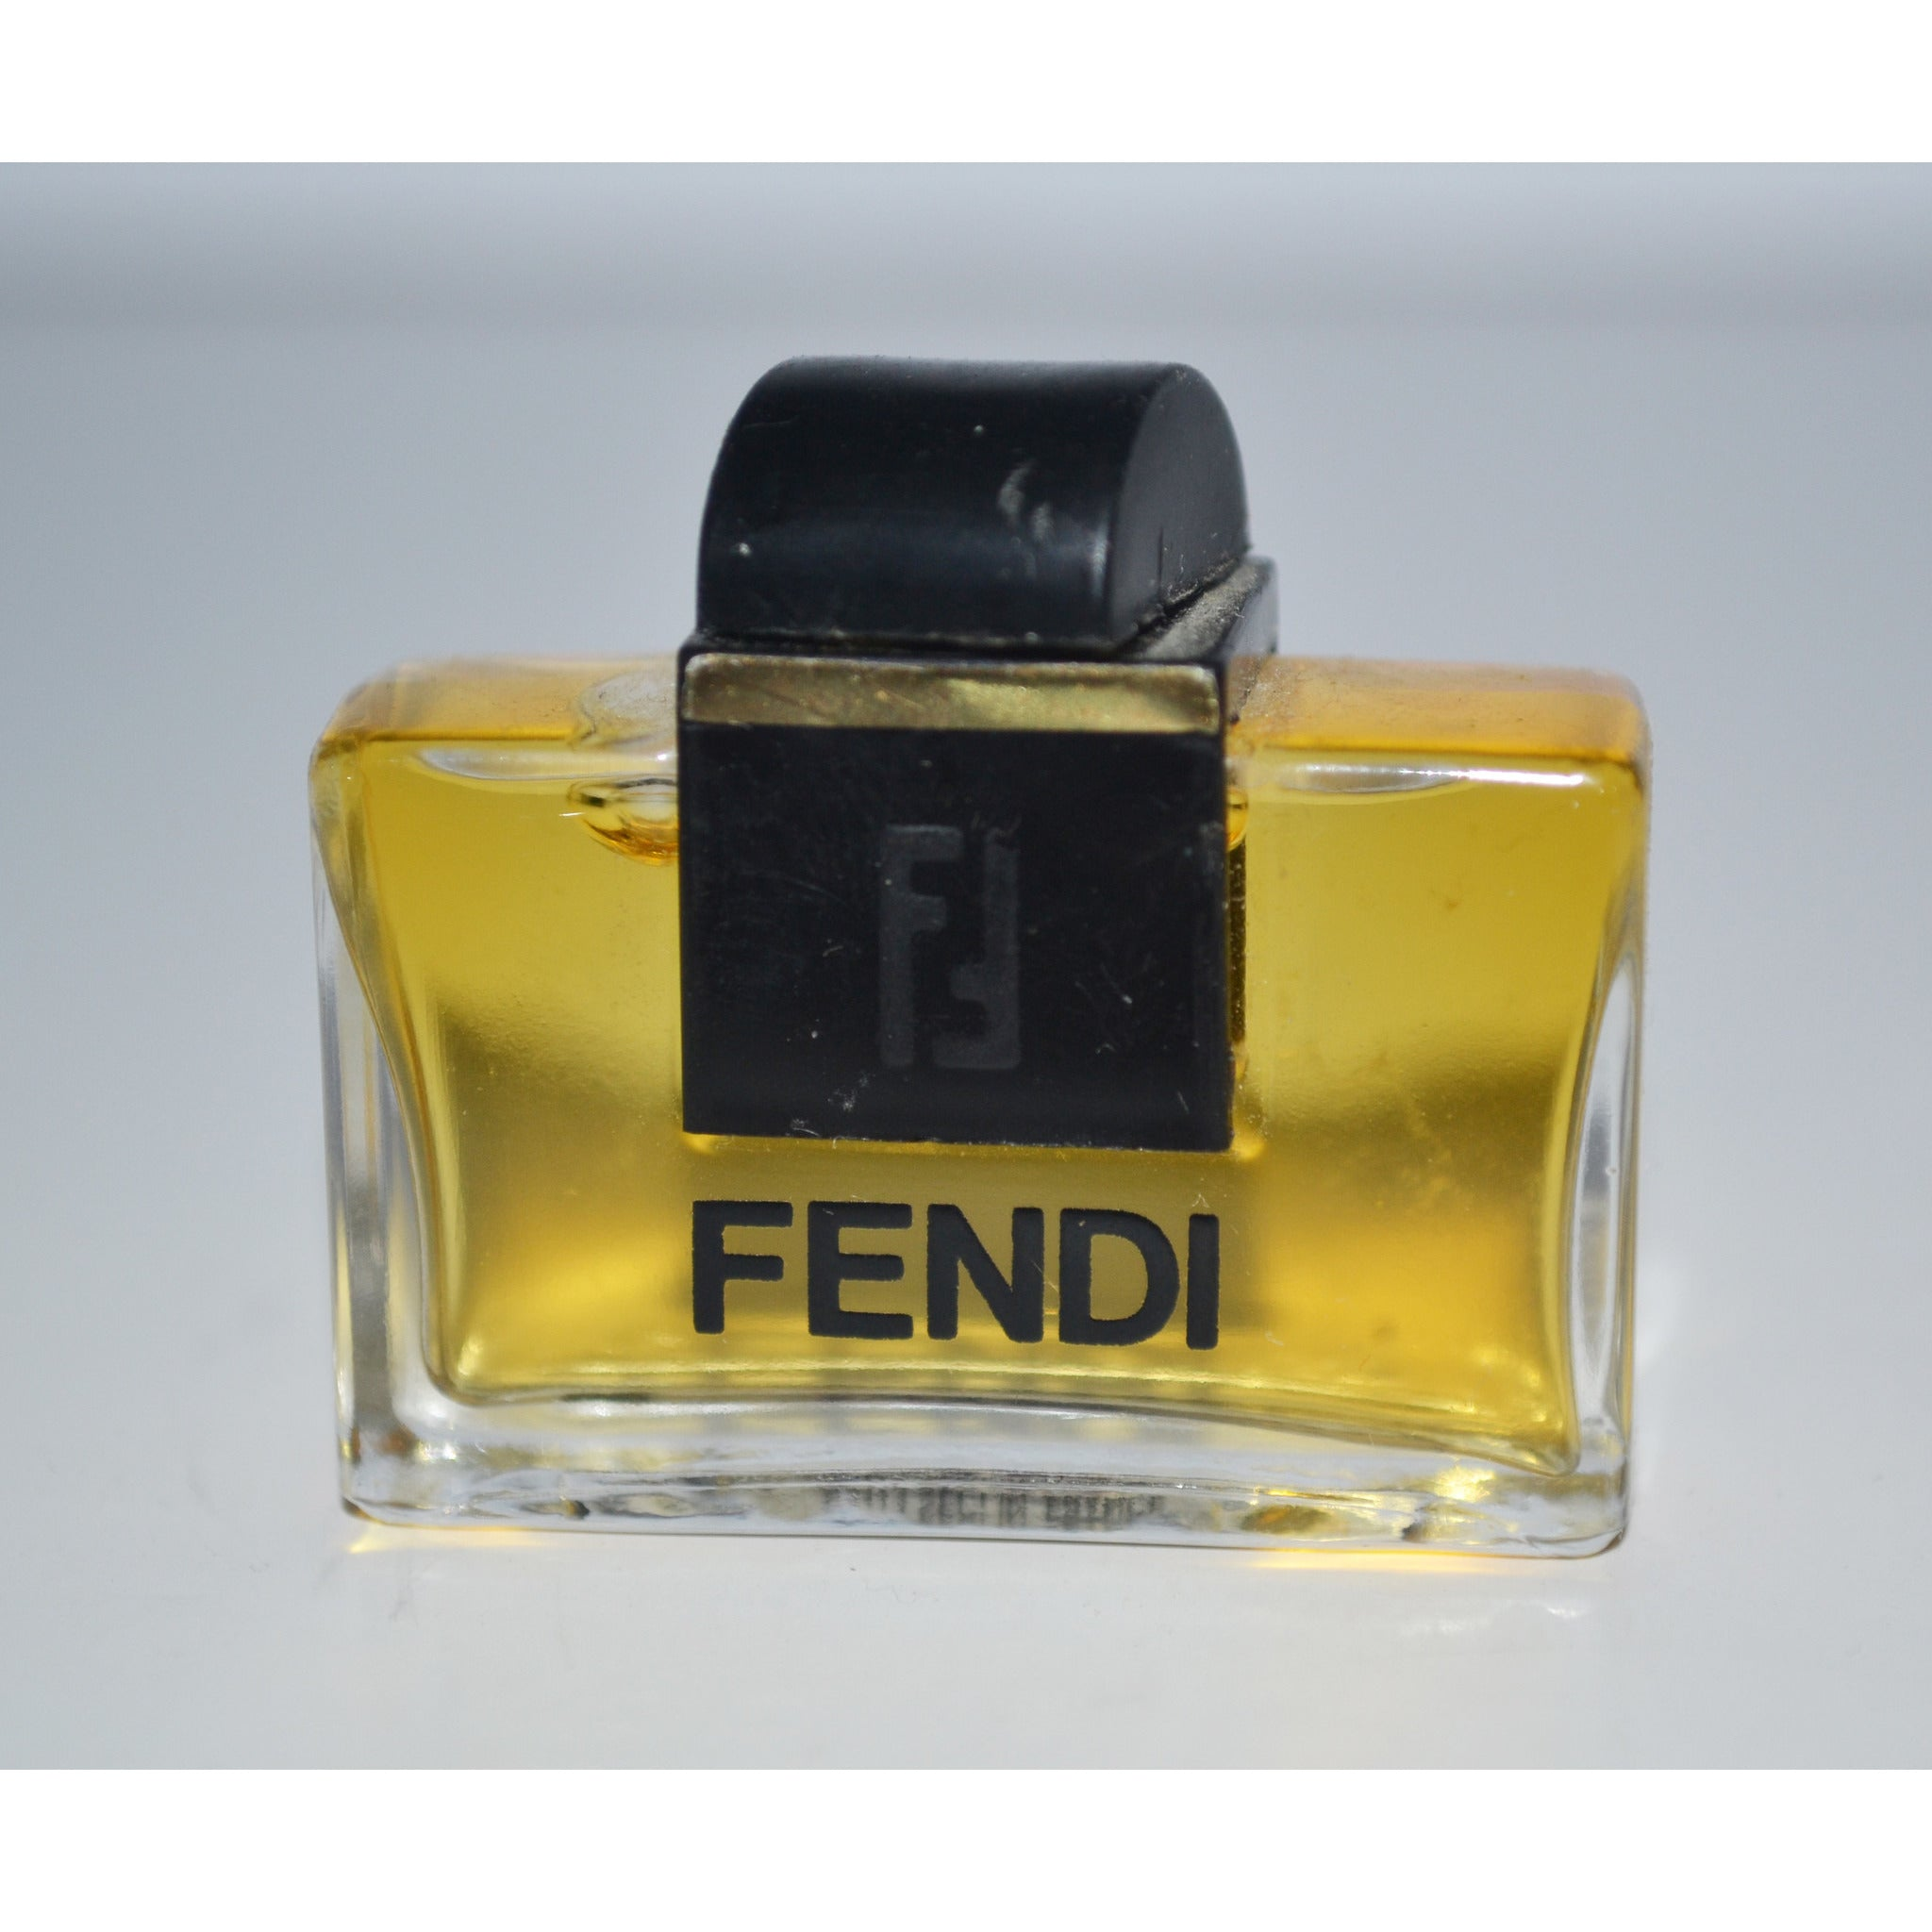 Discontinued Fendi Perfume Mini